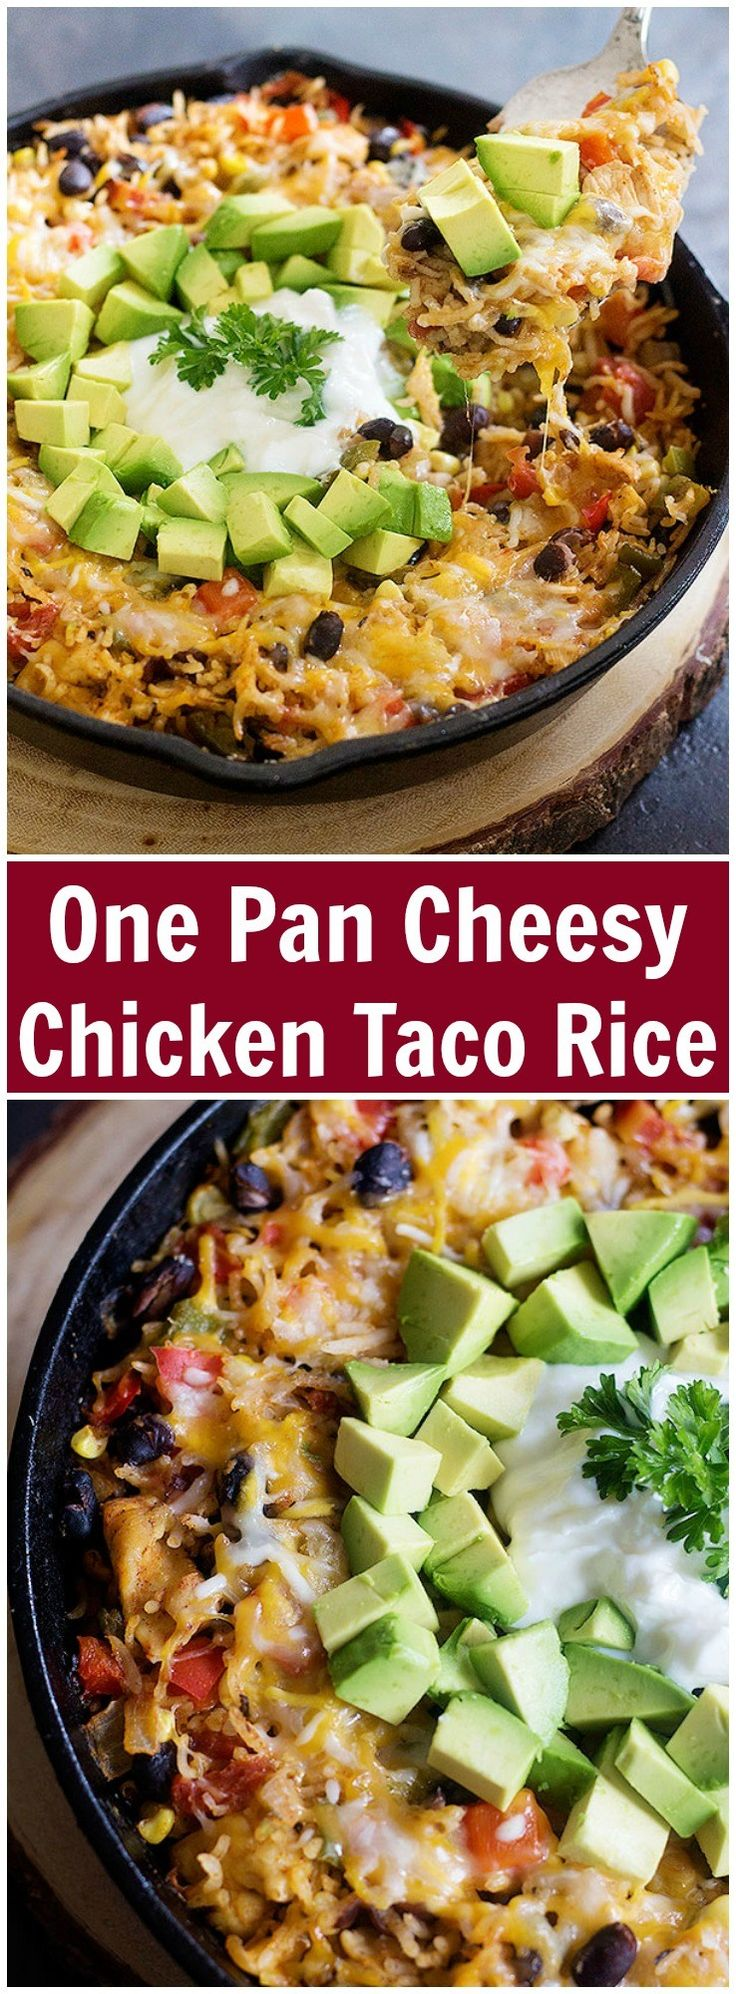 505 best images about Rice Recipes on Pinterest